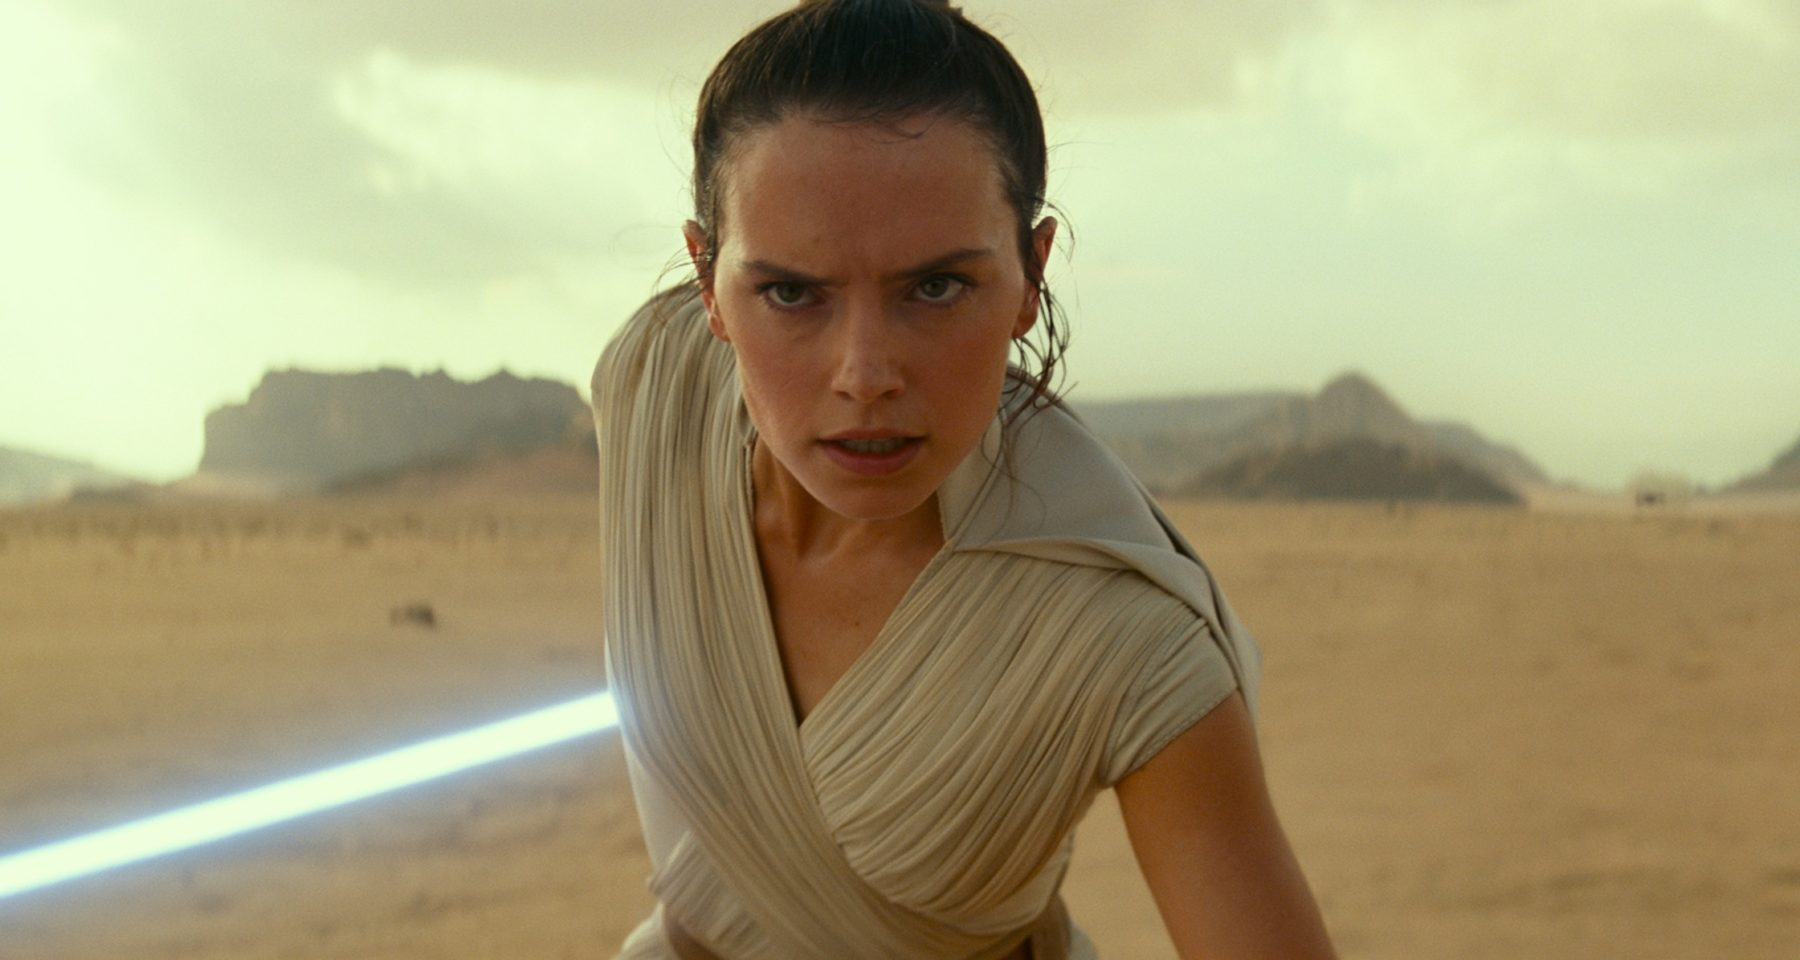 """Star Wars: The Rise of Skywalker will answer """"who is Rey?"""", says writer Chris Terrio"""